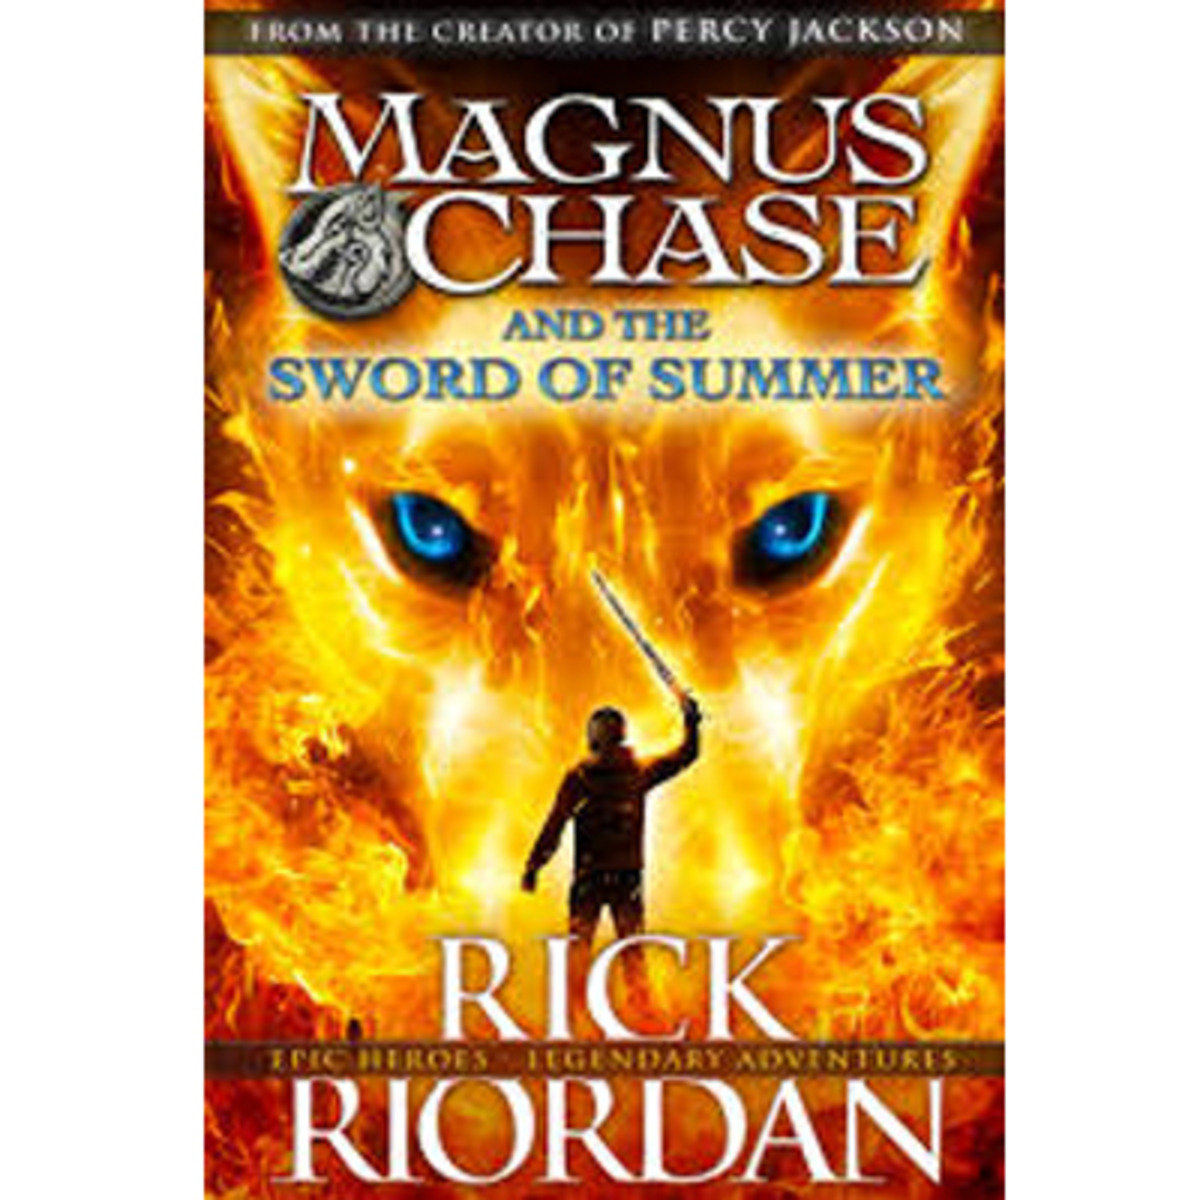 MAGNUS CHASE AND THE SWORD OF SUMMER 9780141342429